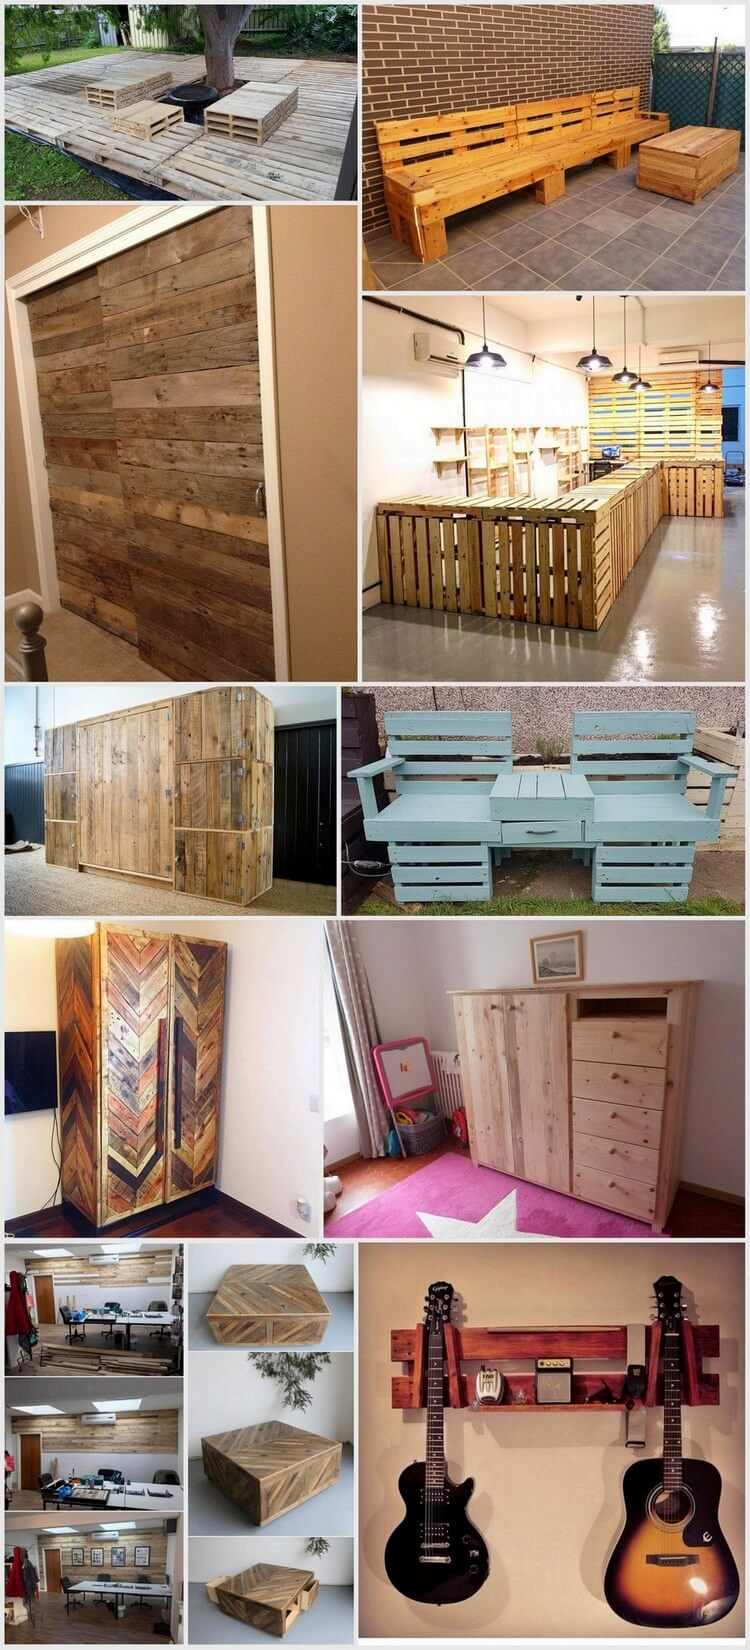 Some Amazing Plans for Recycled Wood Pallets